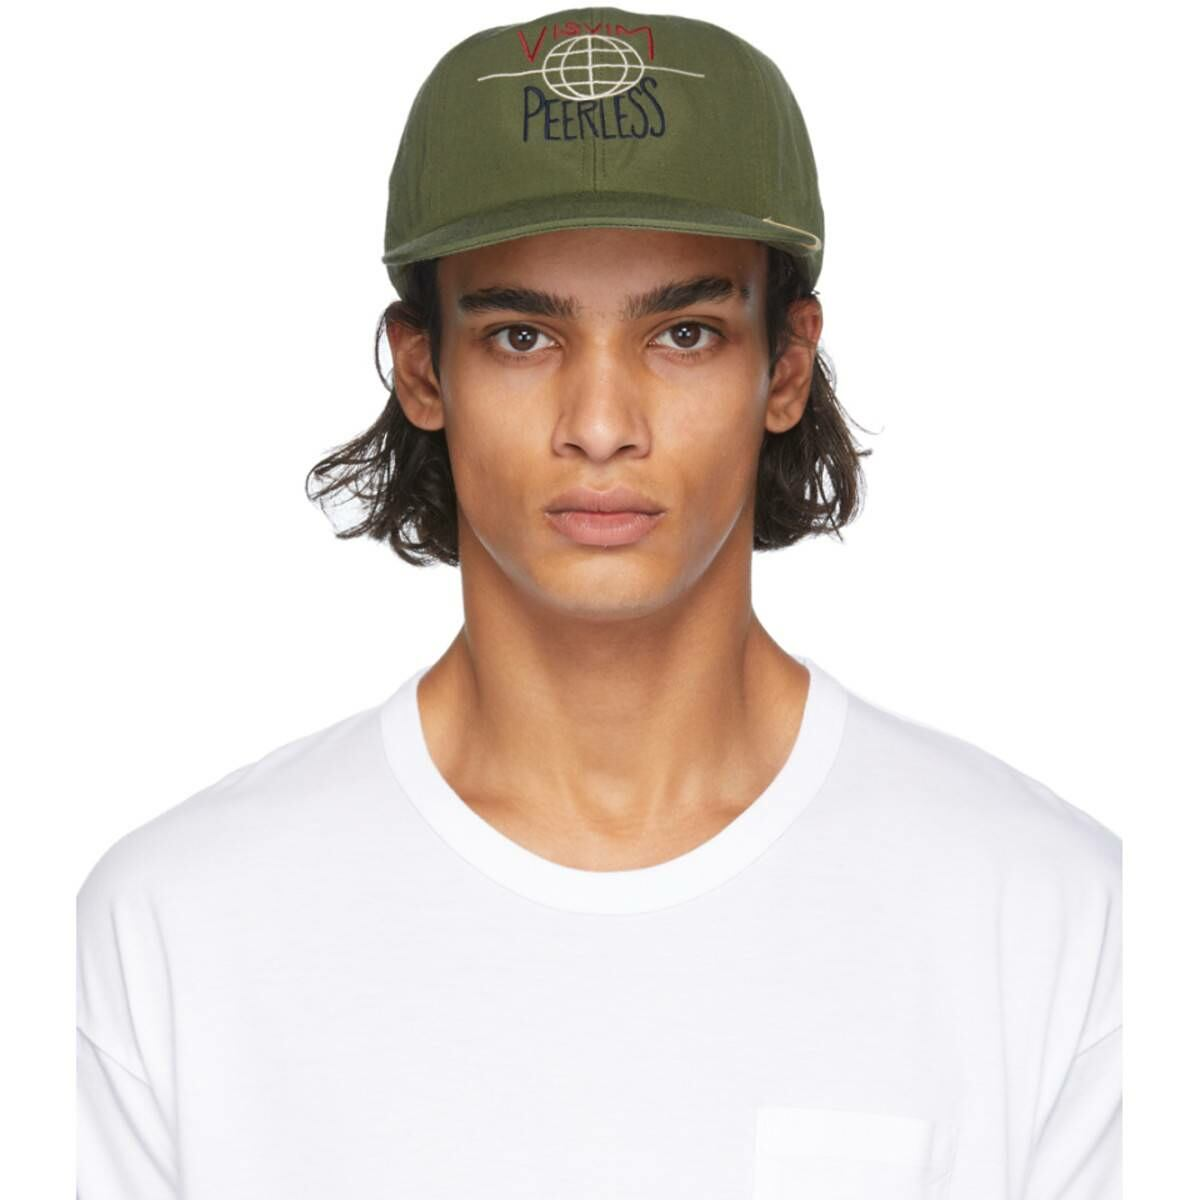 Visvim Green Excelsior Cap Ssense USA MEN Men ACCESSORIES Mens CAPS